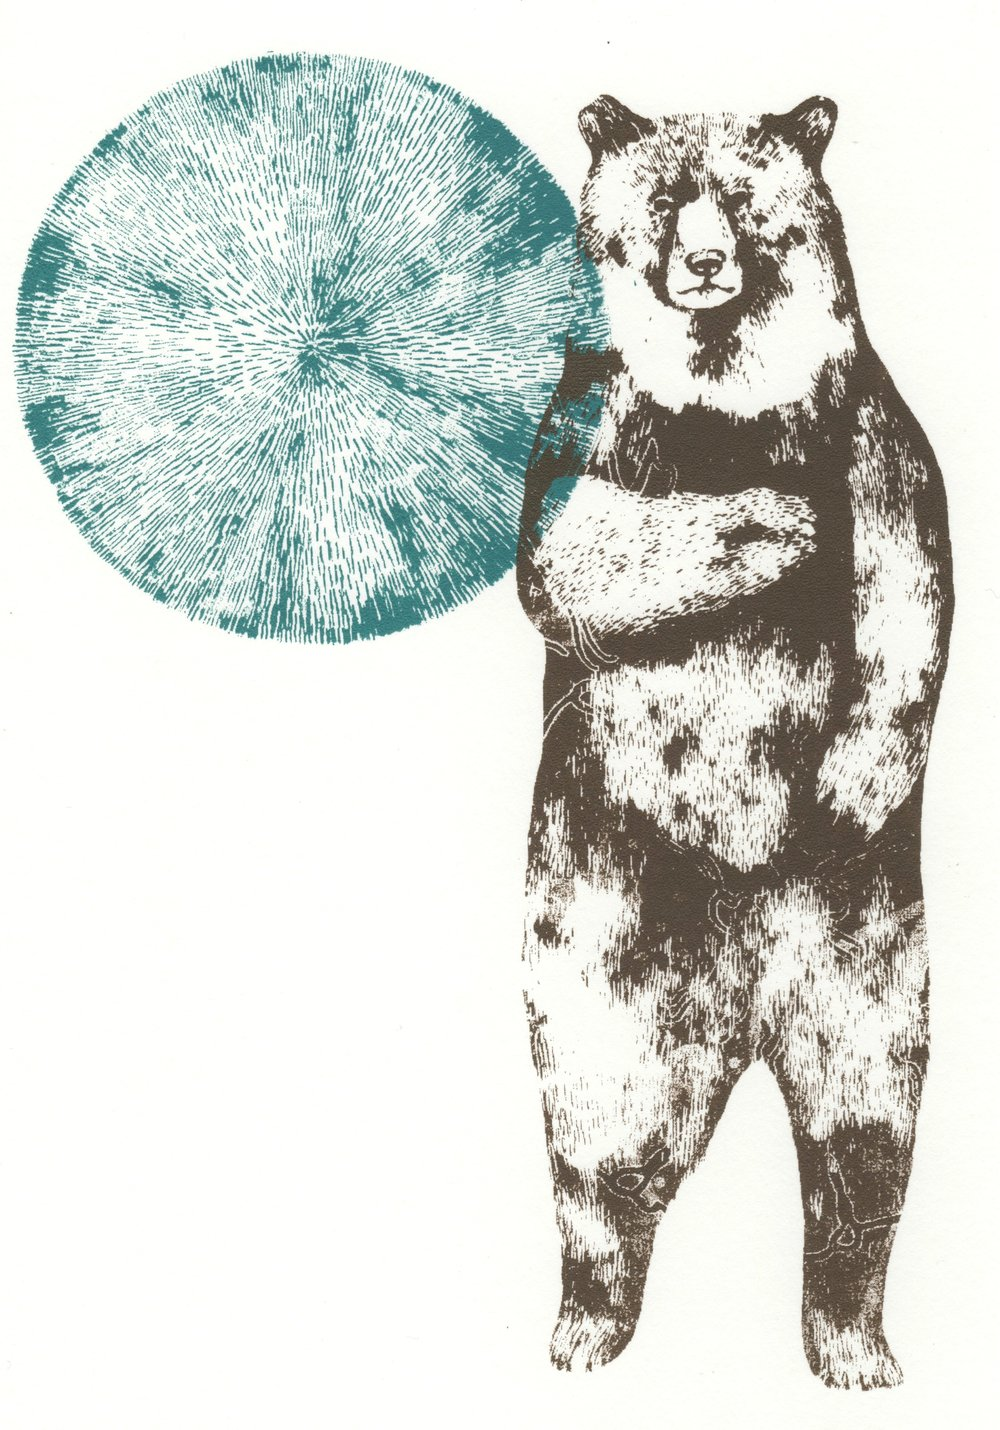 Brave Bear   screenprint    15cm x 21cm    £20 (unframed)